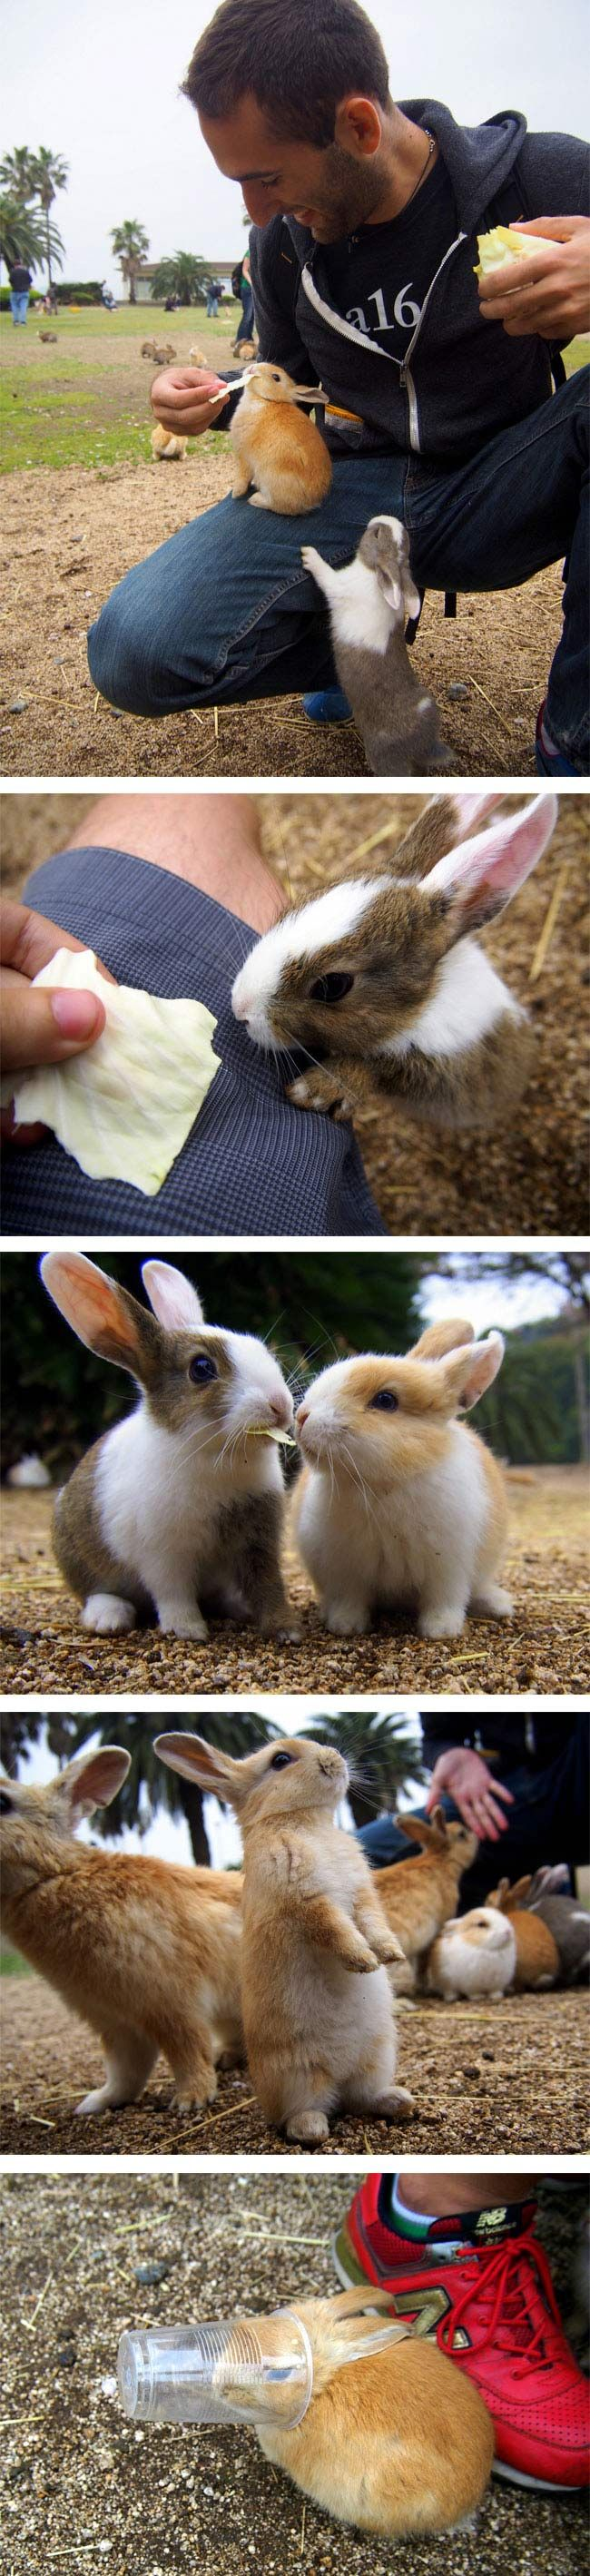 There's a a small island located in the Inland Sea of Japan that is completely overrun with cute, fluffy bunnies who are the island's main inhabitants. How is this not the cutest thing EVER!!